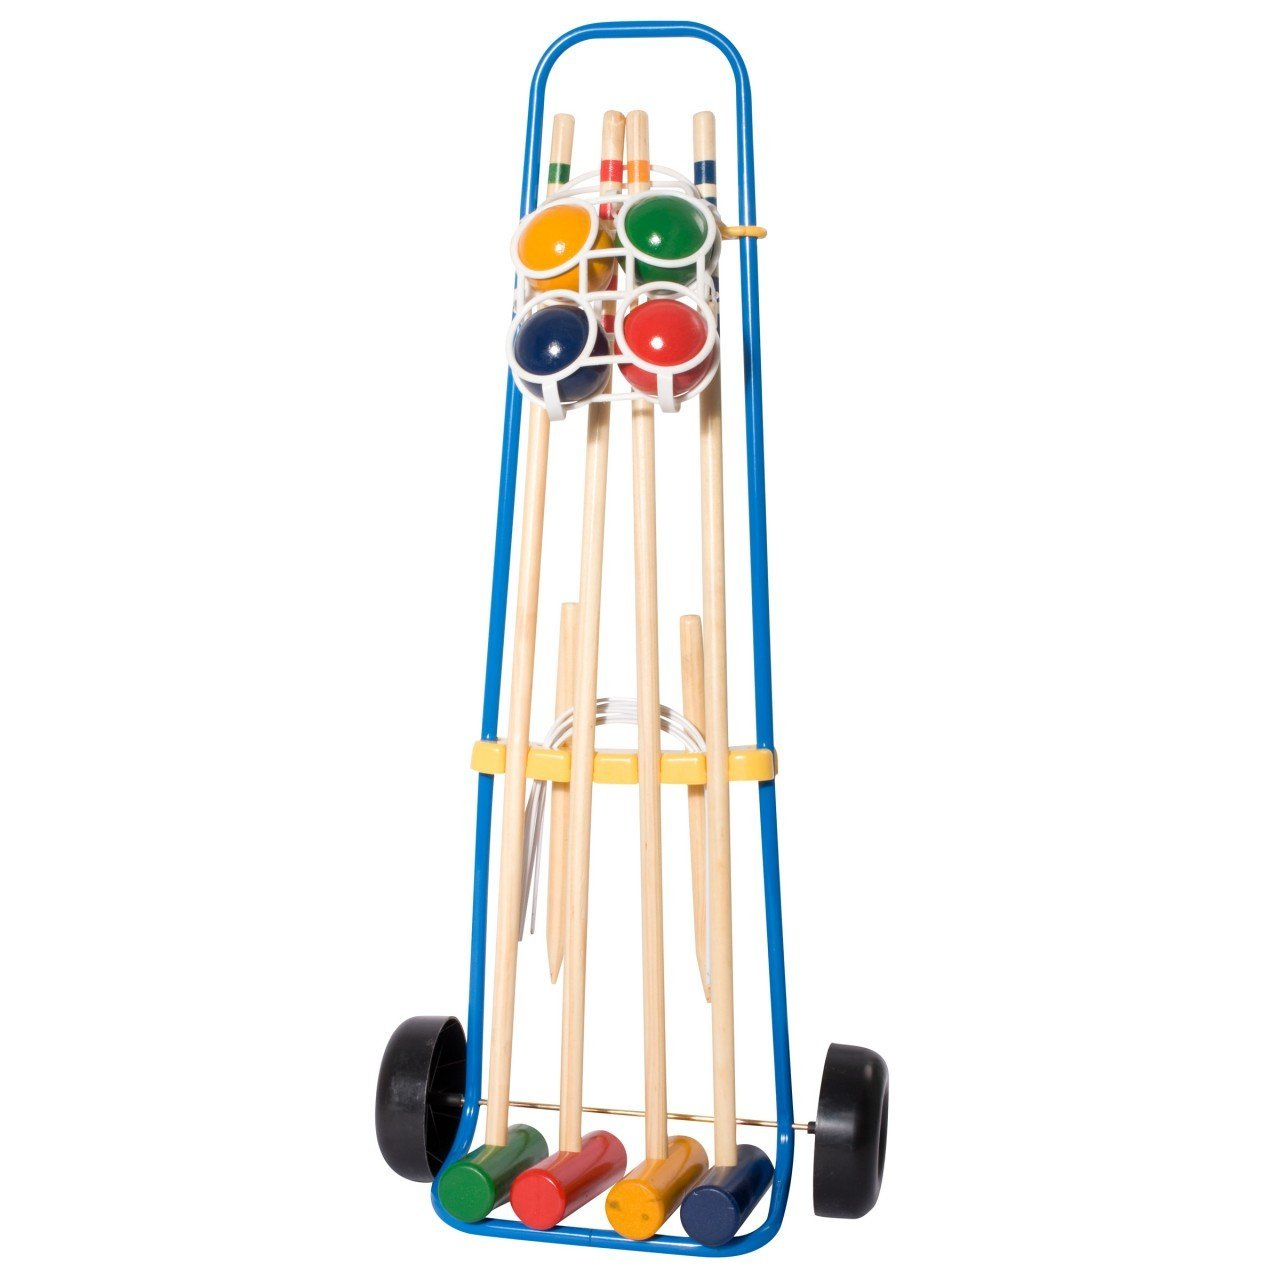 HUDORA 78100 - Krocket Set 4 Spieler